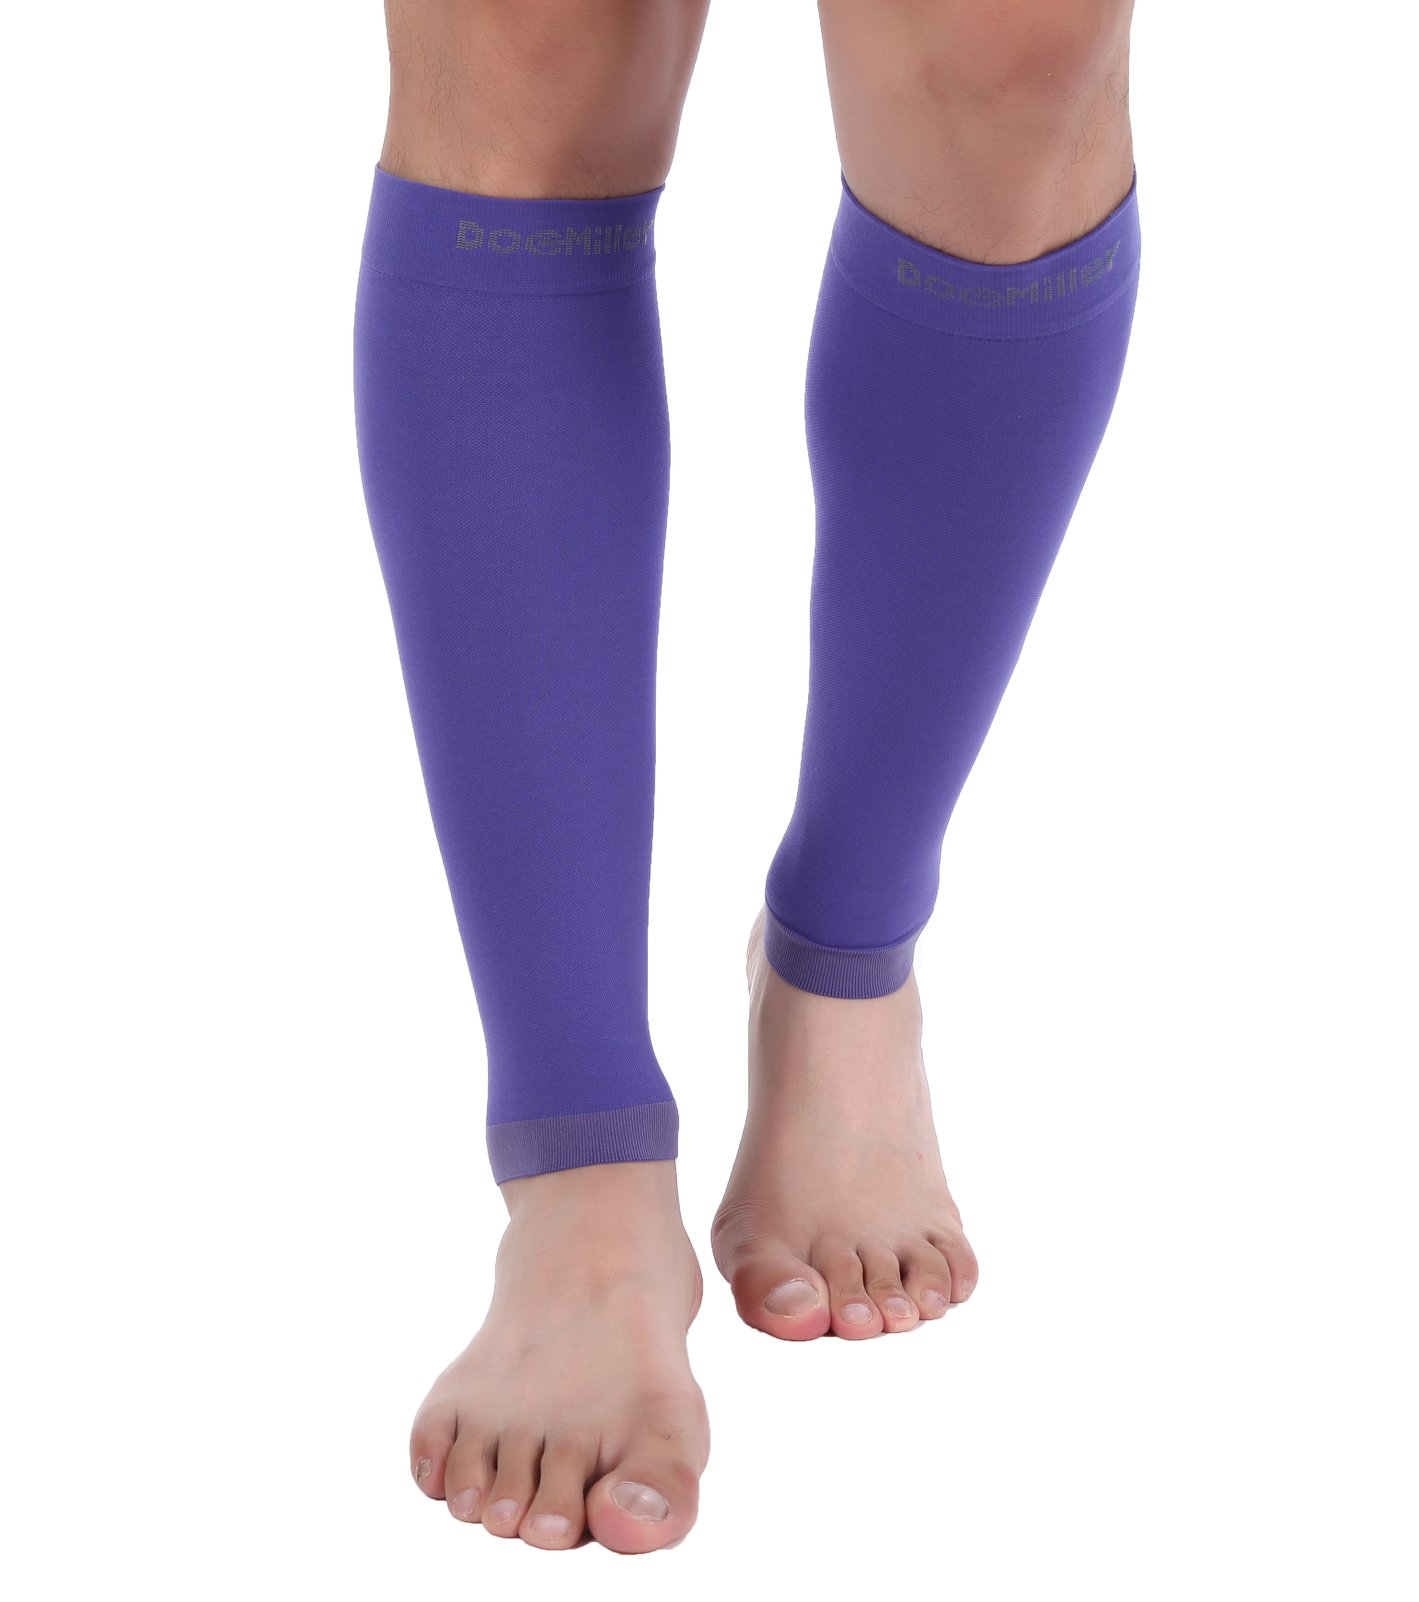 Premium Calf Compression Sleeve 1 Pair 20-30mmHg Strong Calf Support Fashionable COLORS Graduated Pressure for Sports Running Muscle Recovery Shin Splints Varicose Veins Doc Miller (Violet, X-Large)